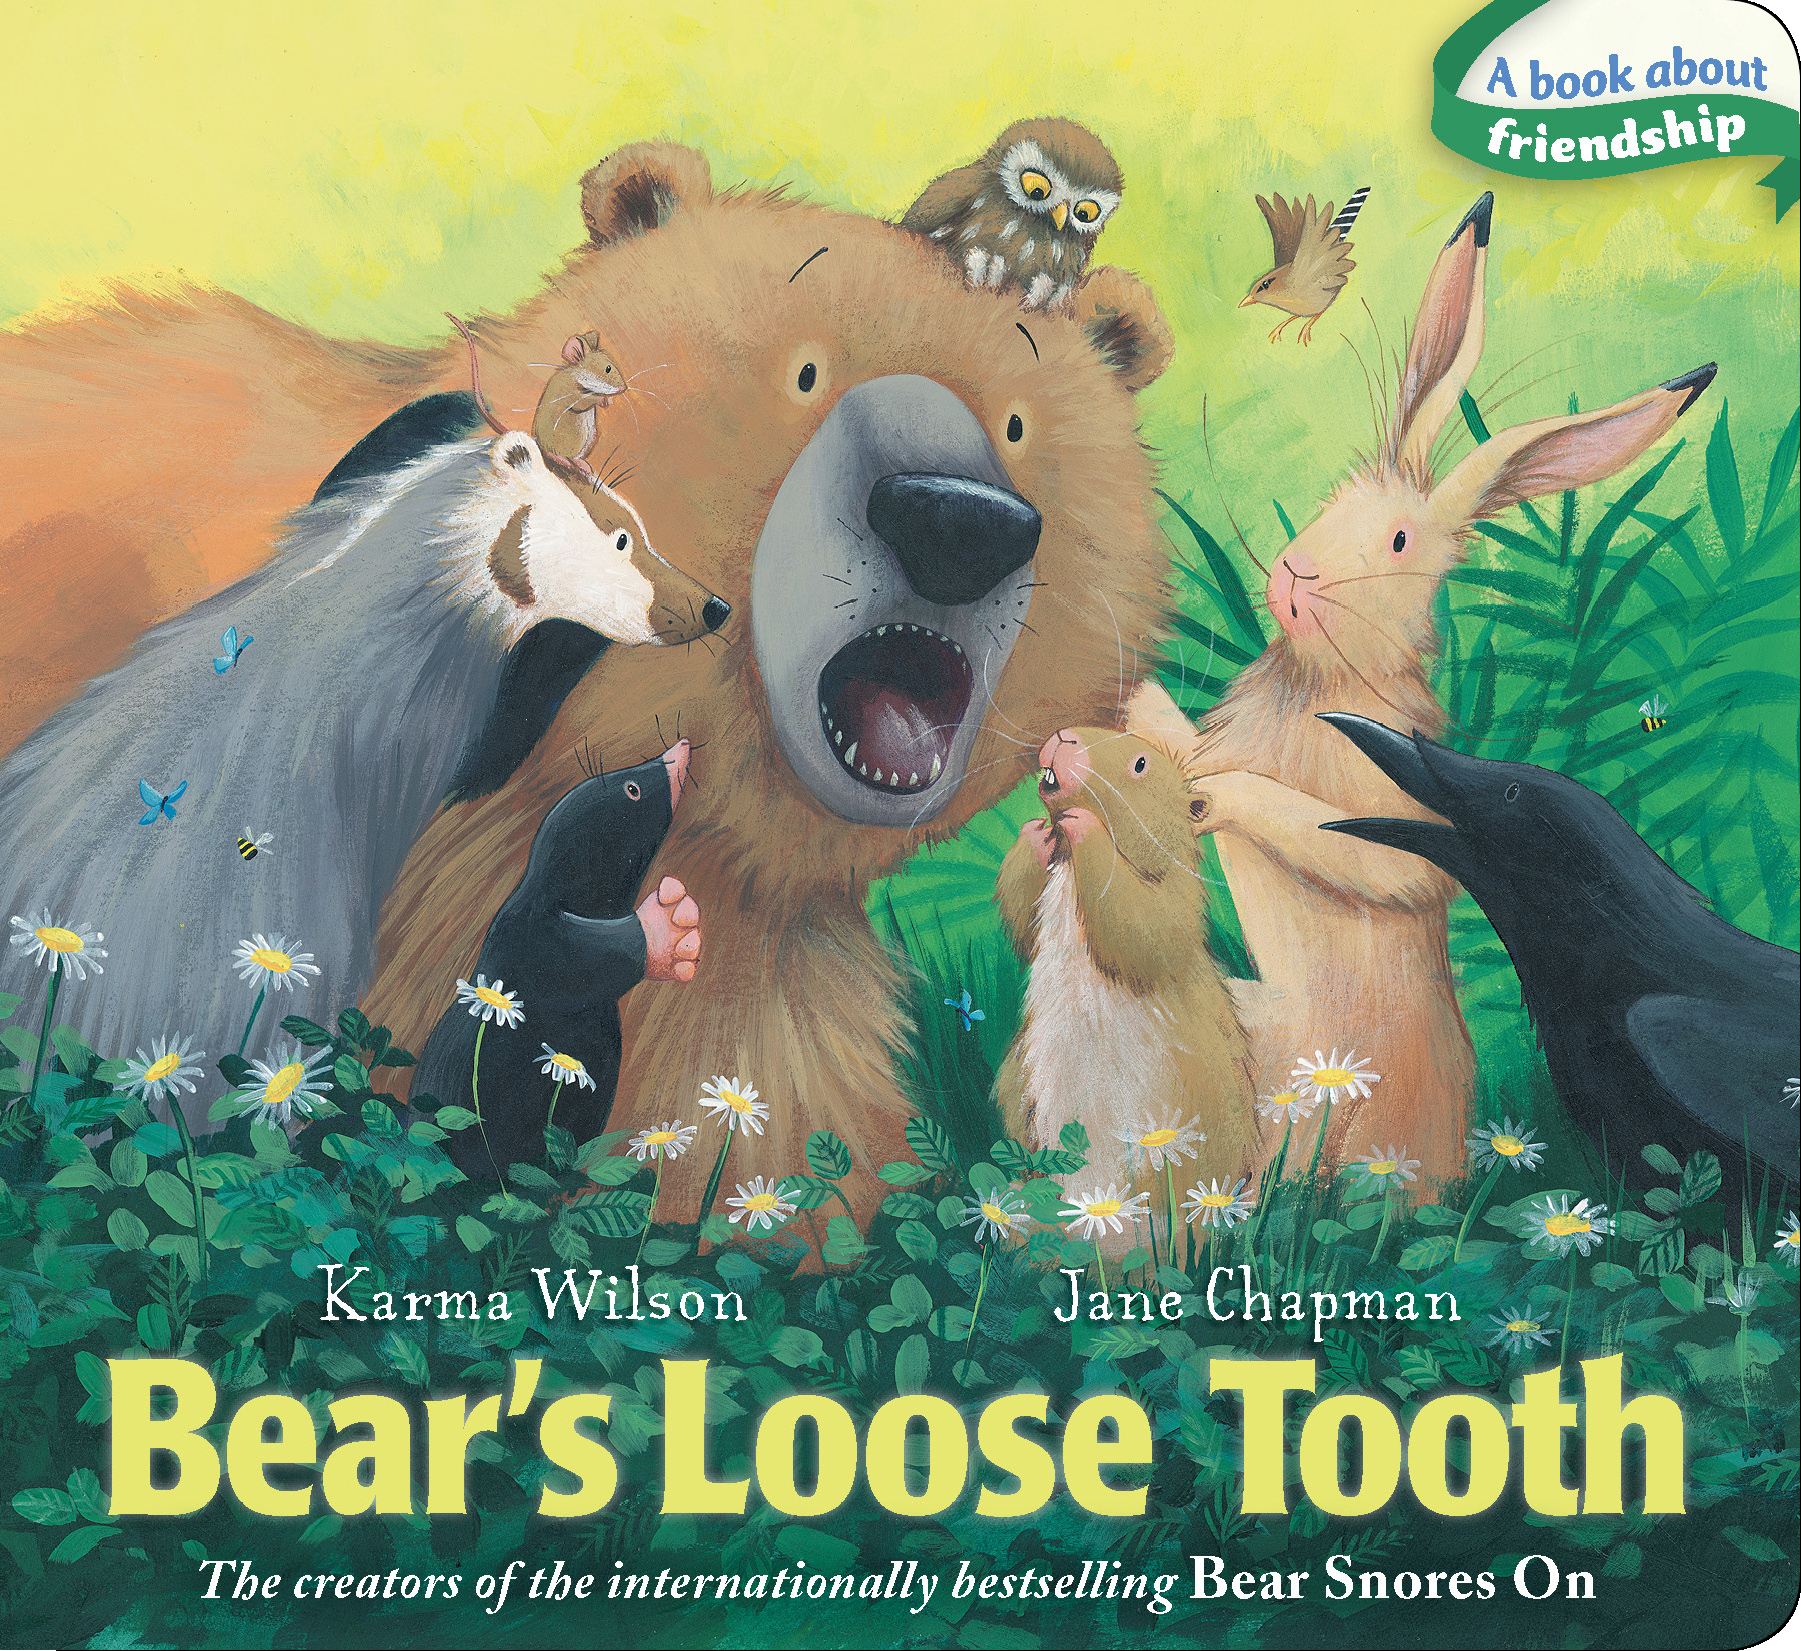 Bears-loose-tooth-9781442489363_hr